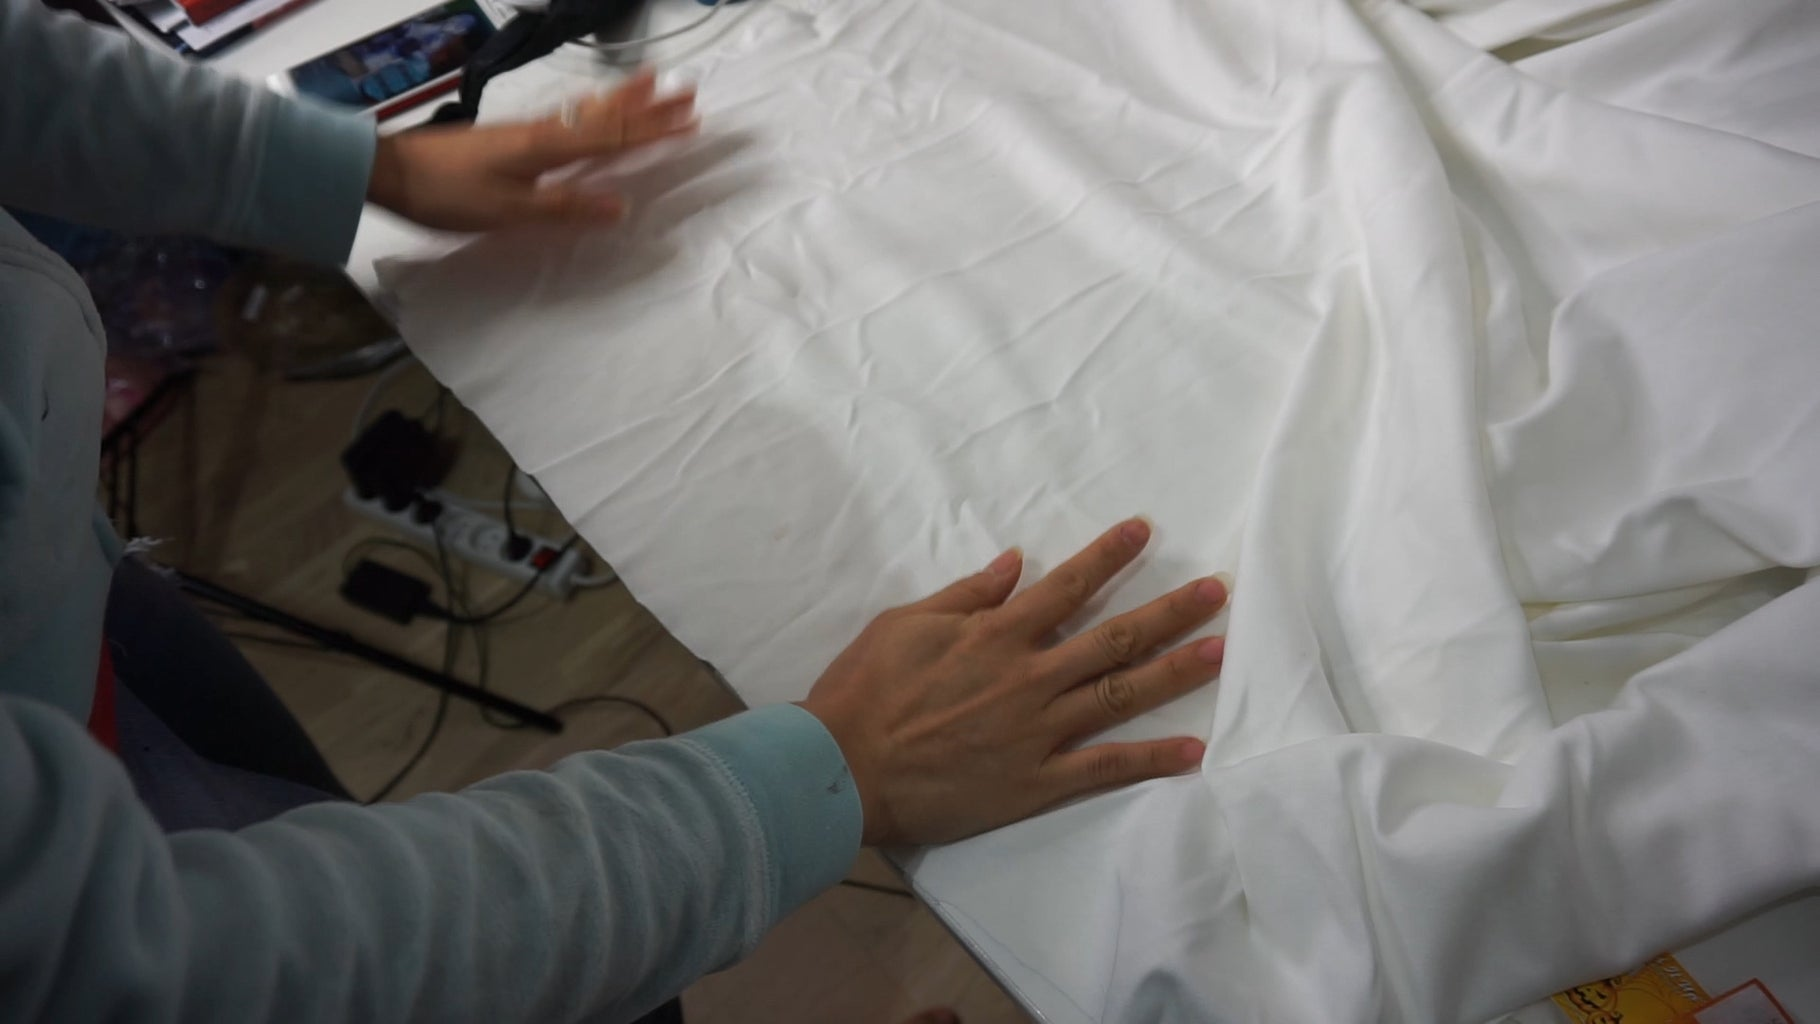 Step 1: Cutting Out the General Shape